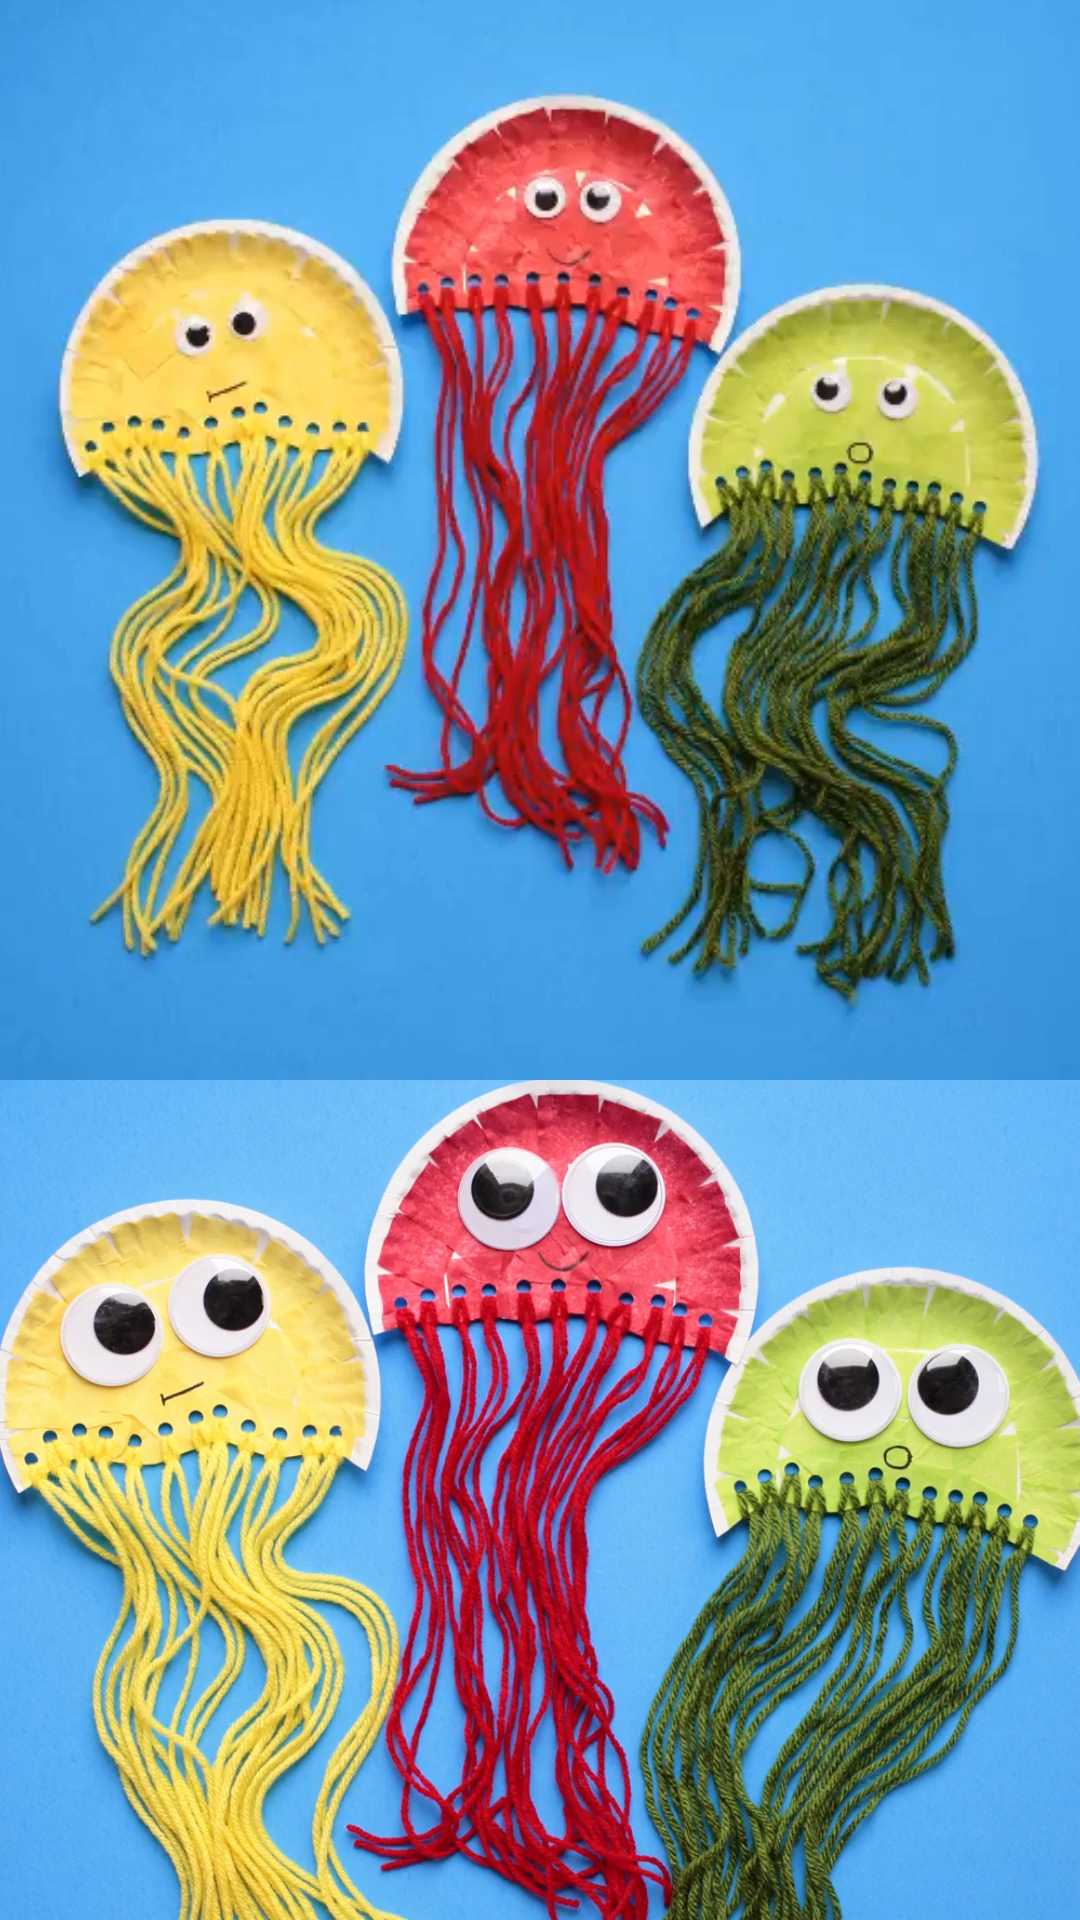 Paper plate jellyfish craft Paper plate jellyfish craft for kids Easy ocean animal craft or deep sea unit study for preschoolers kindergartners and older kids